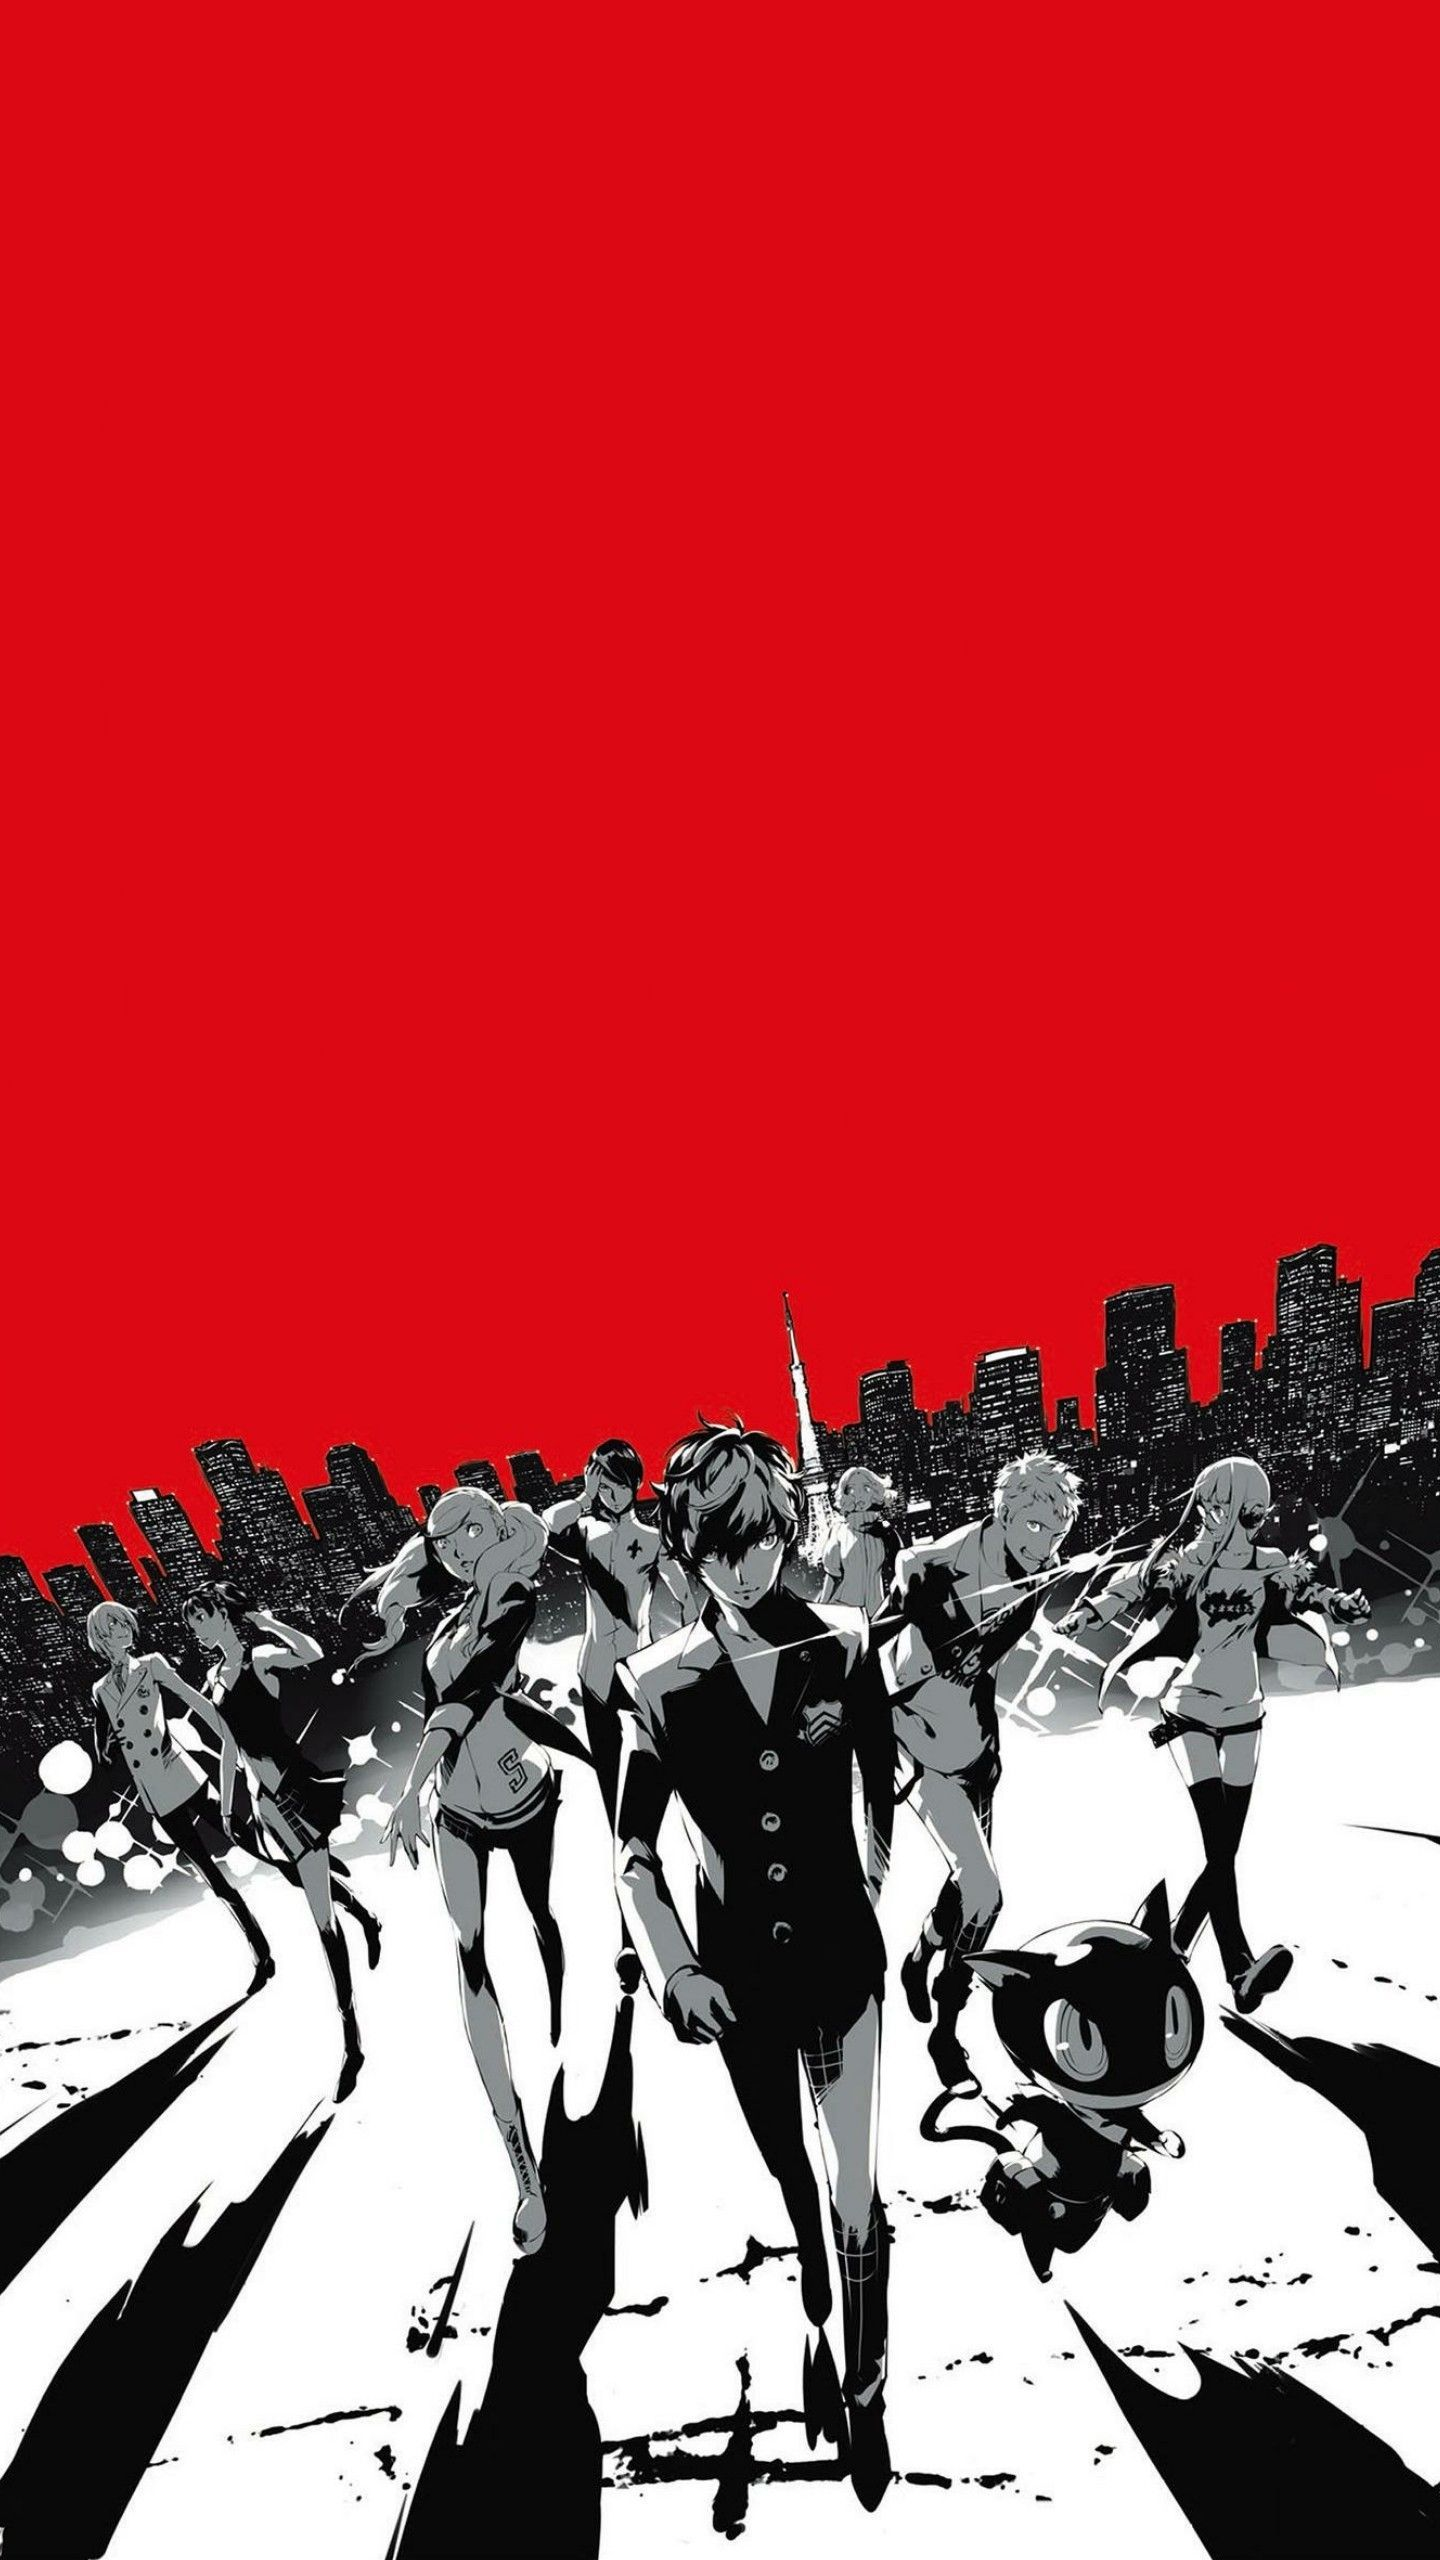 Persona 5 Phone Wallpapers - Top Free Persona 5 Phone ...